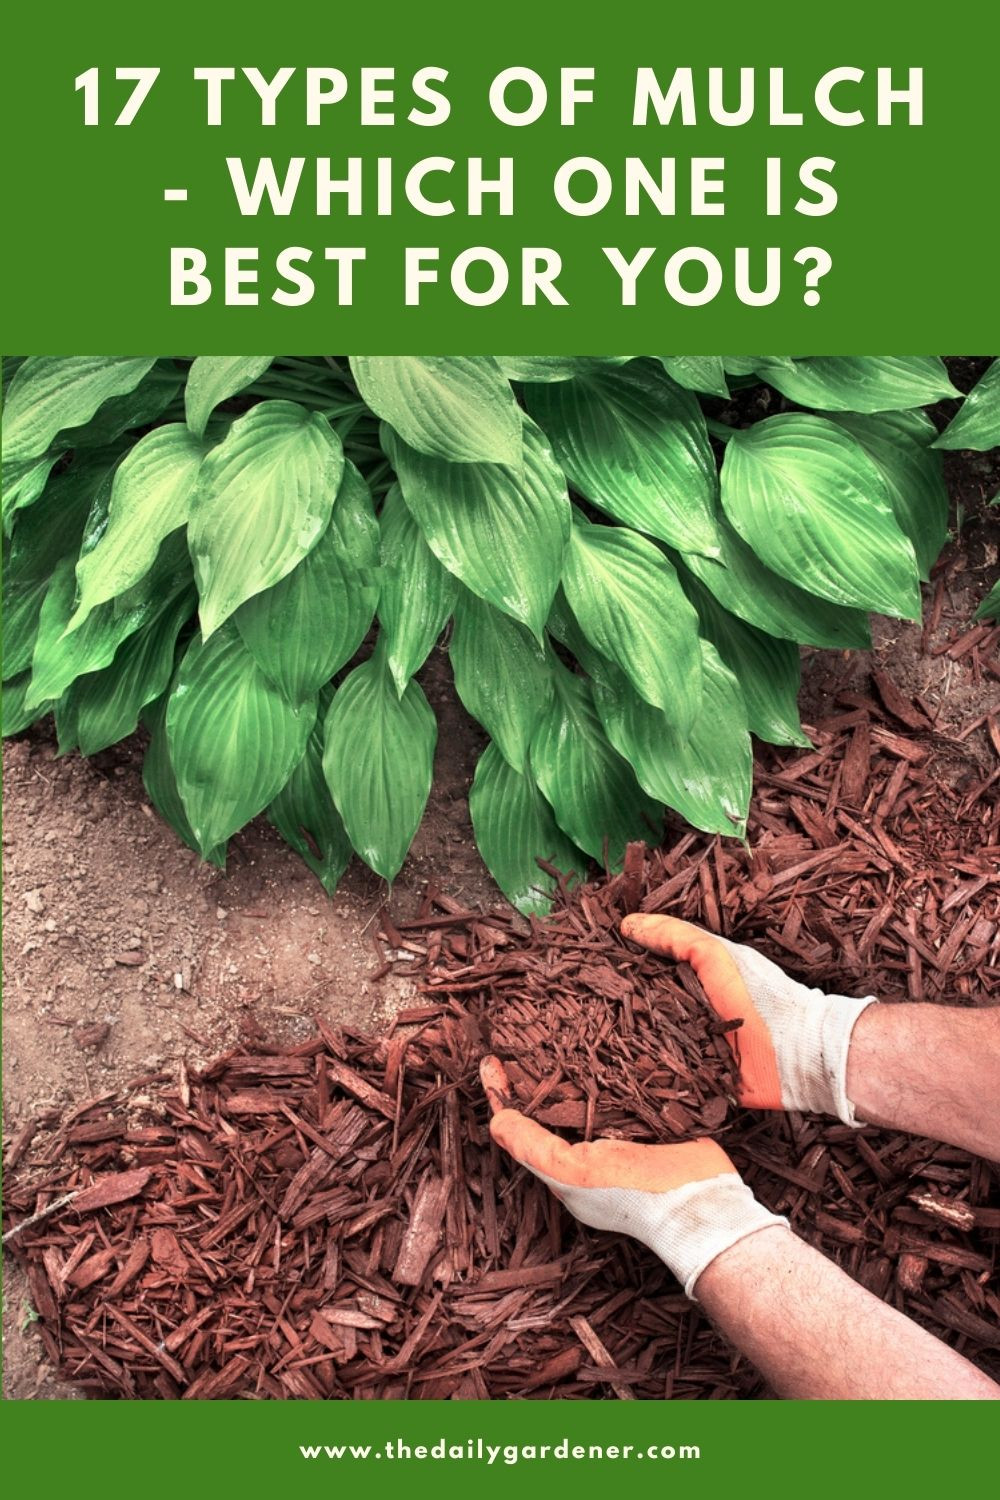 17 Types of Mulch - Which One is Best for You 2